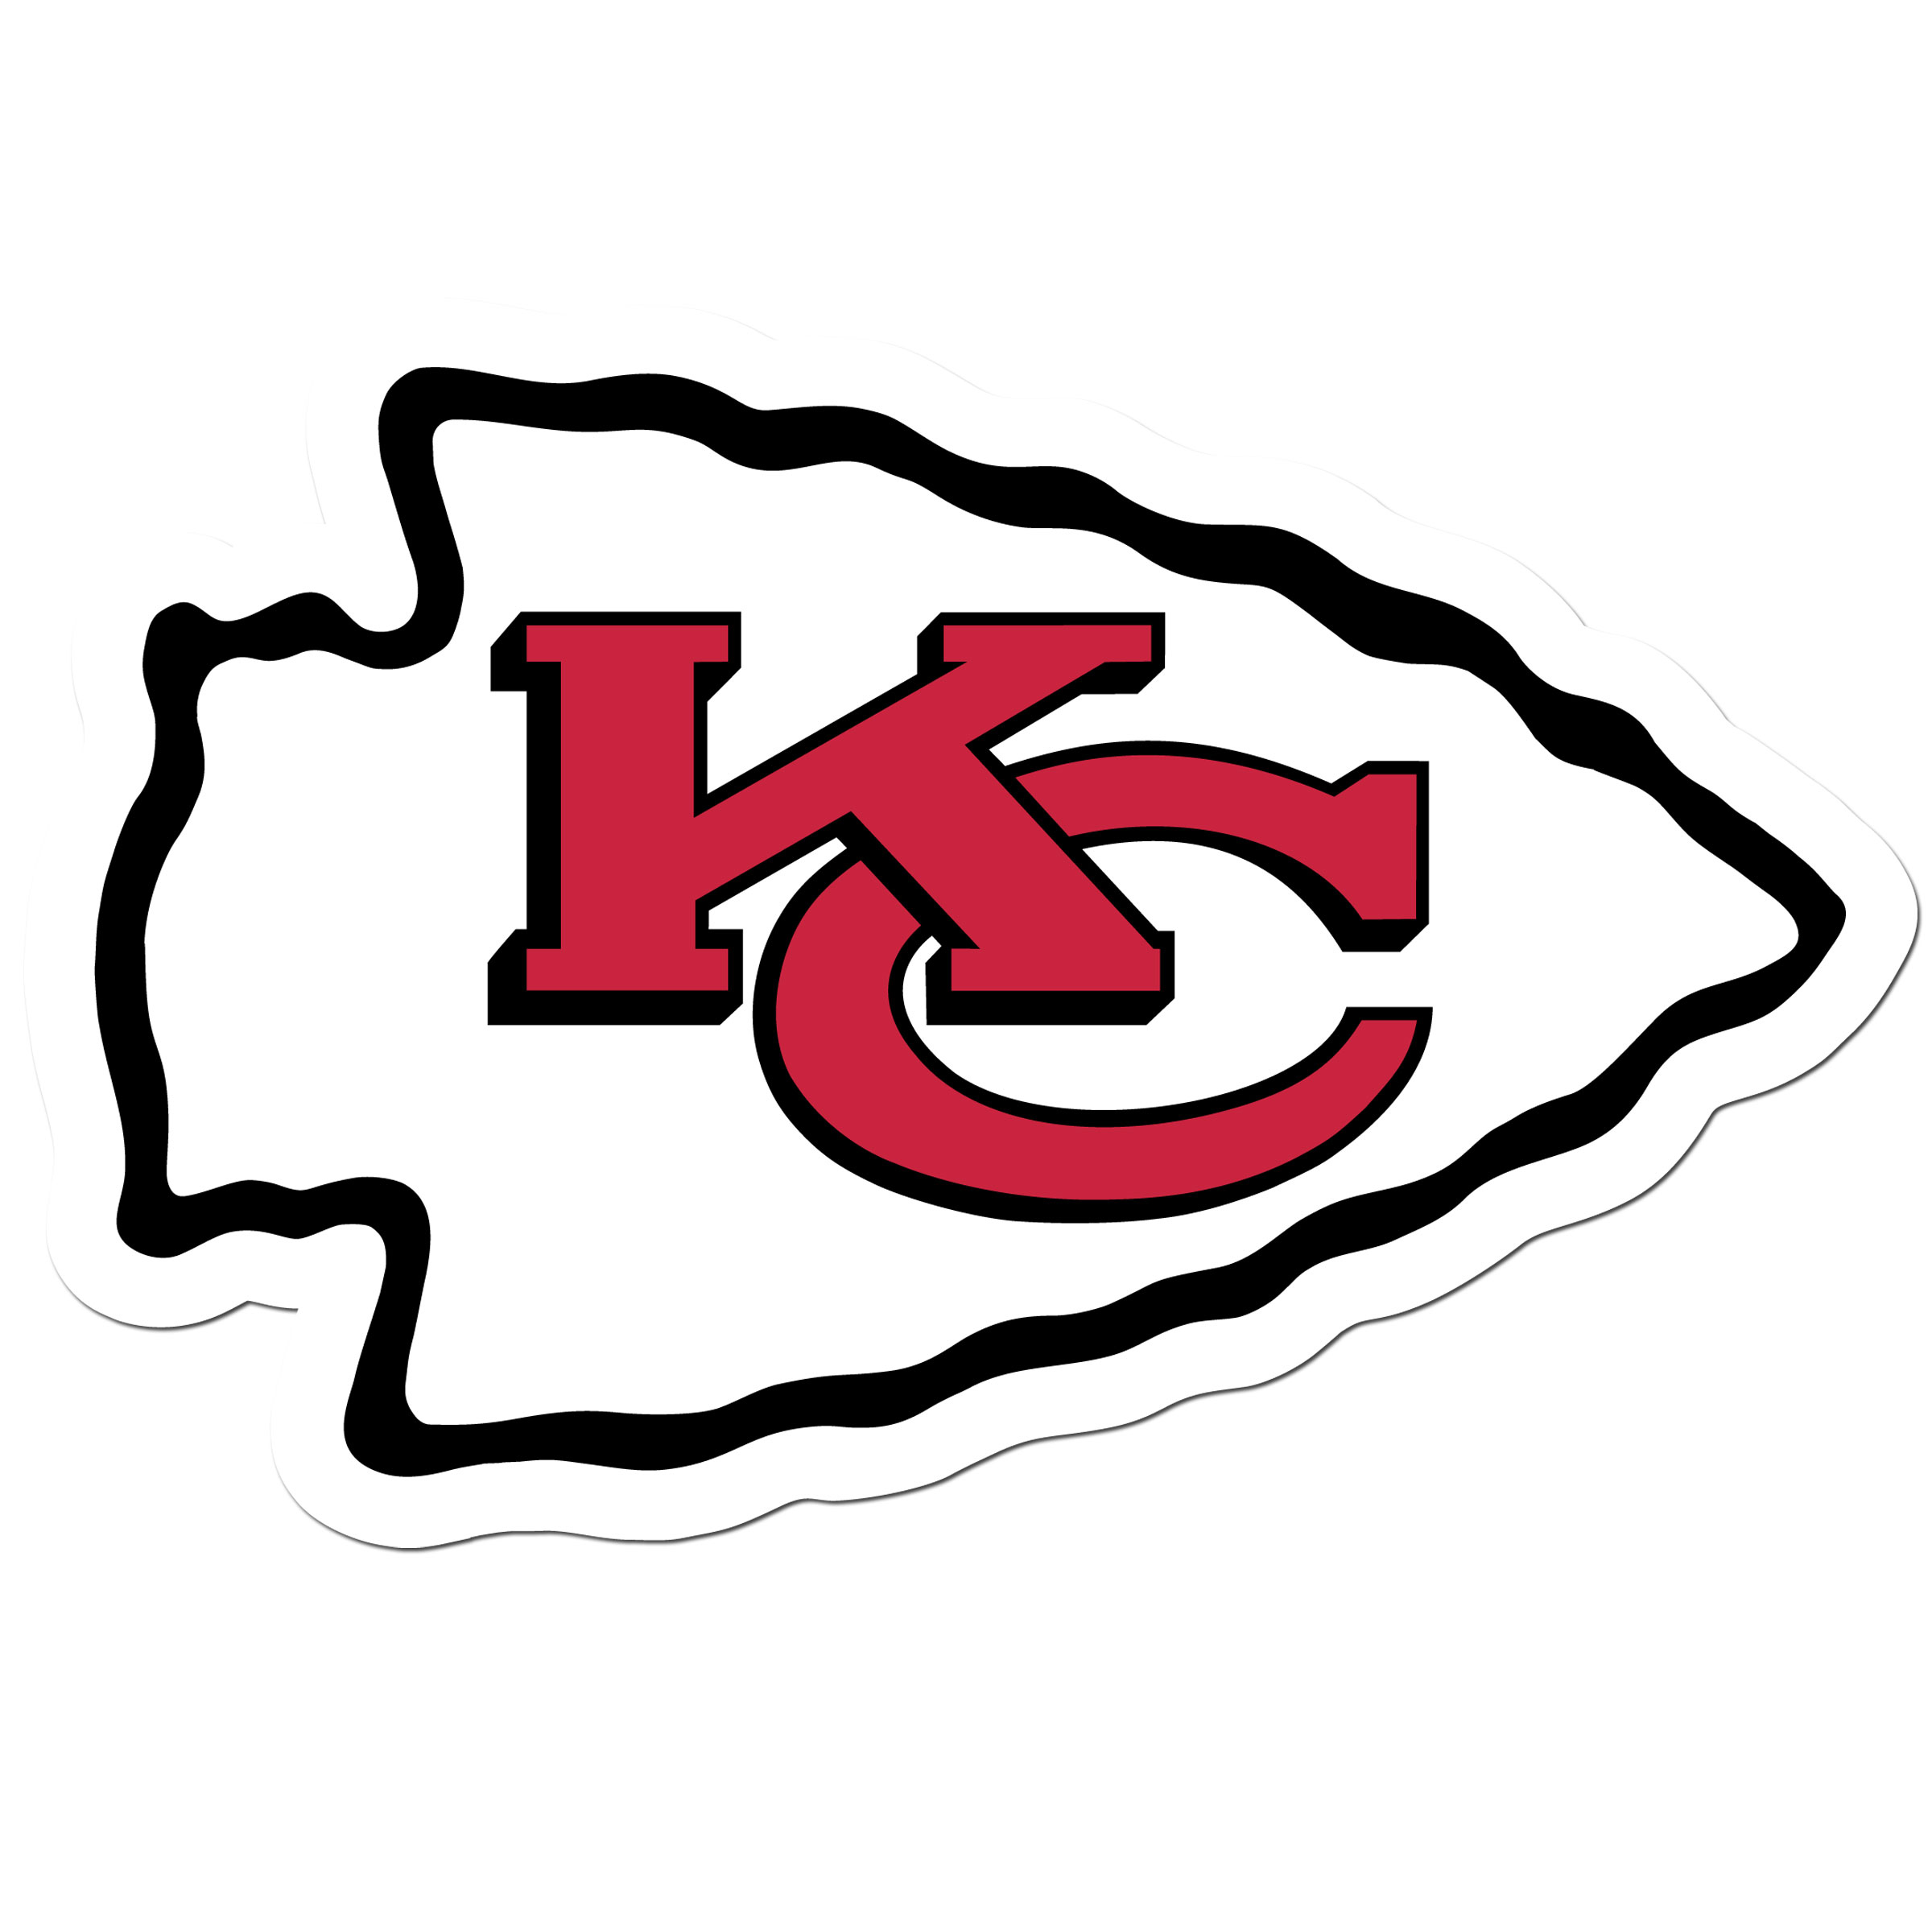 Kansas City Chiefs 8 inch Auto Decal - This bold, 8 inch Kansas City Chiefs is a great way to show off your team pride! The low tack vinyl decal is easily positioned and adjusted to make sure you get that logo in just the right spot on your vehicle. Designed to be used on the outside of the window.